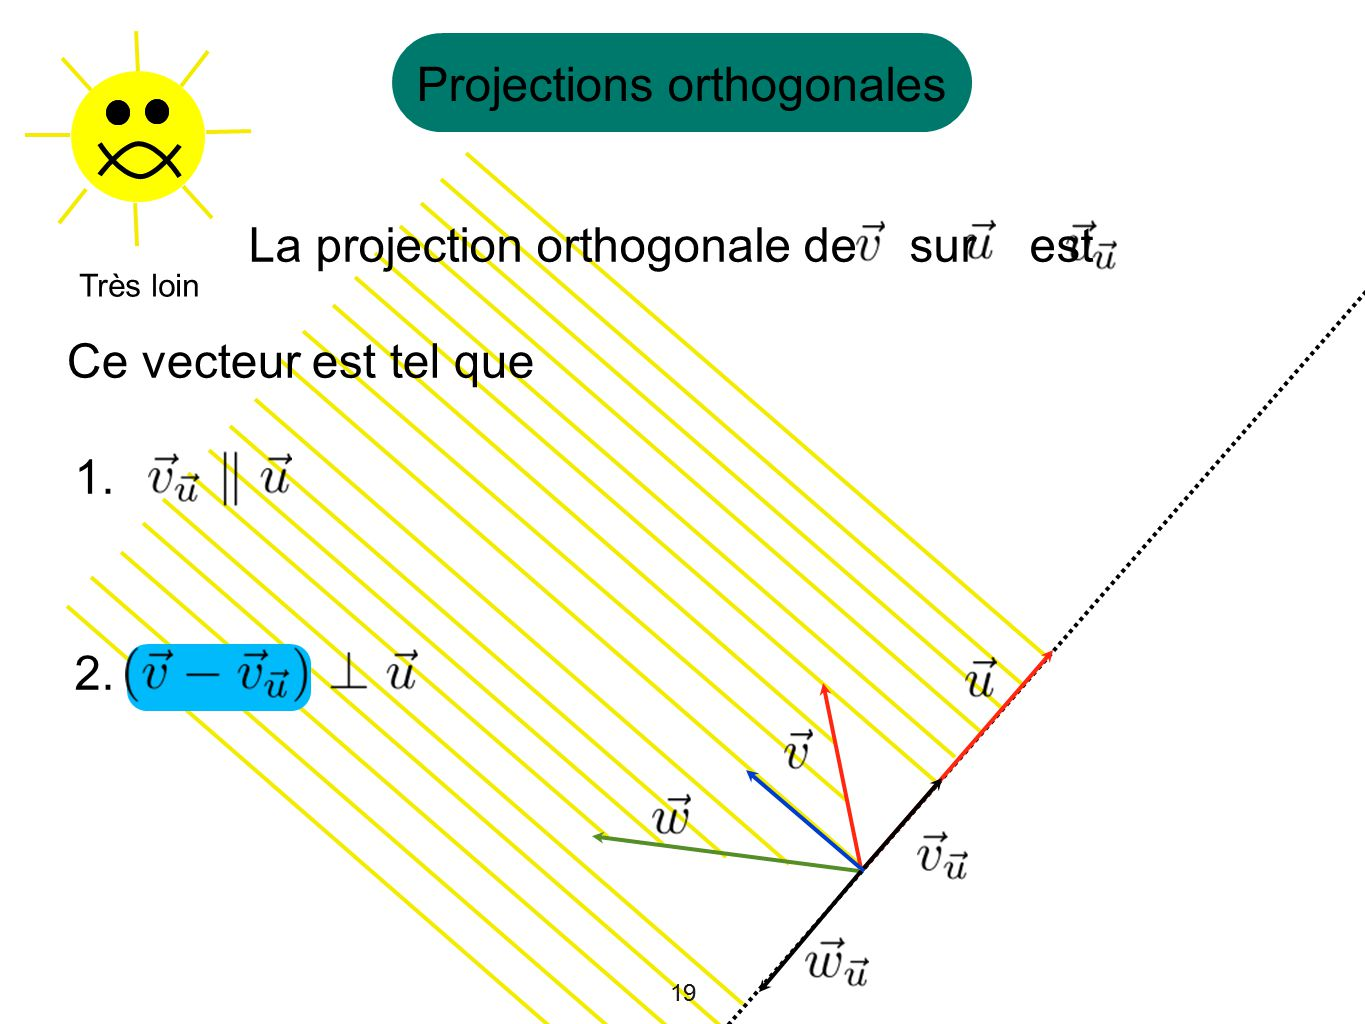 Projections orthogonales